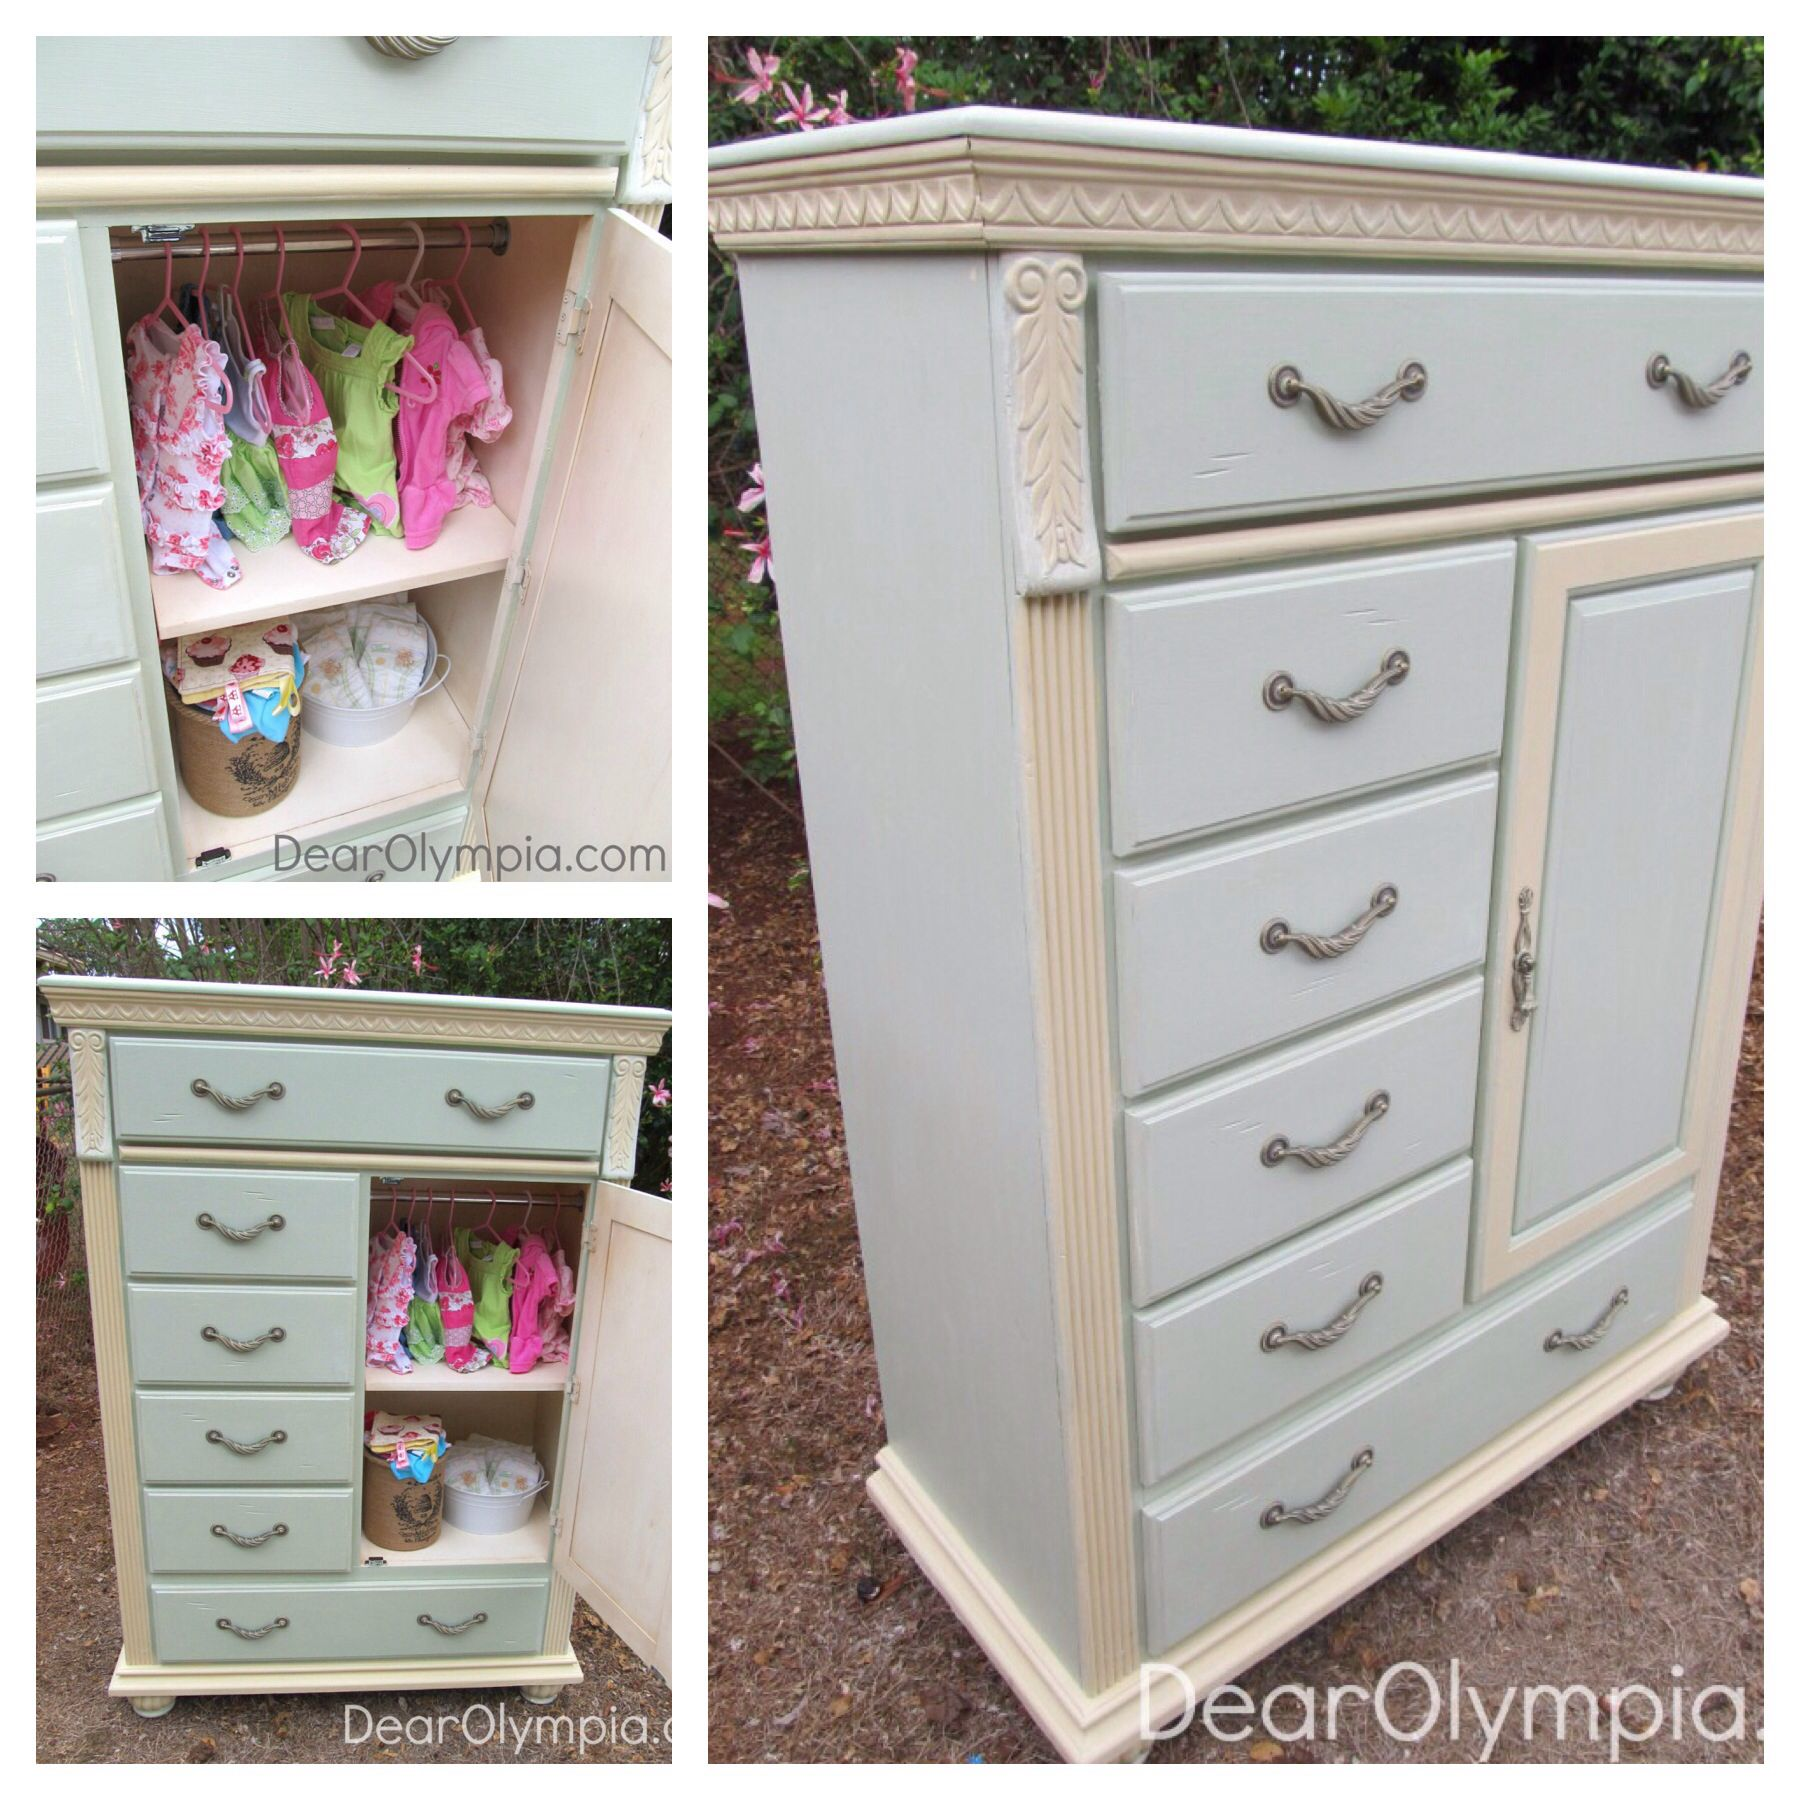 Best Mint And Cream Tall Boy Chest Of Drawers Paintedfurniture Mint Cececaldwell Kentucky Mint 400 x 300